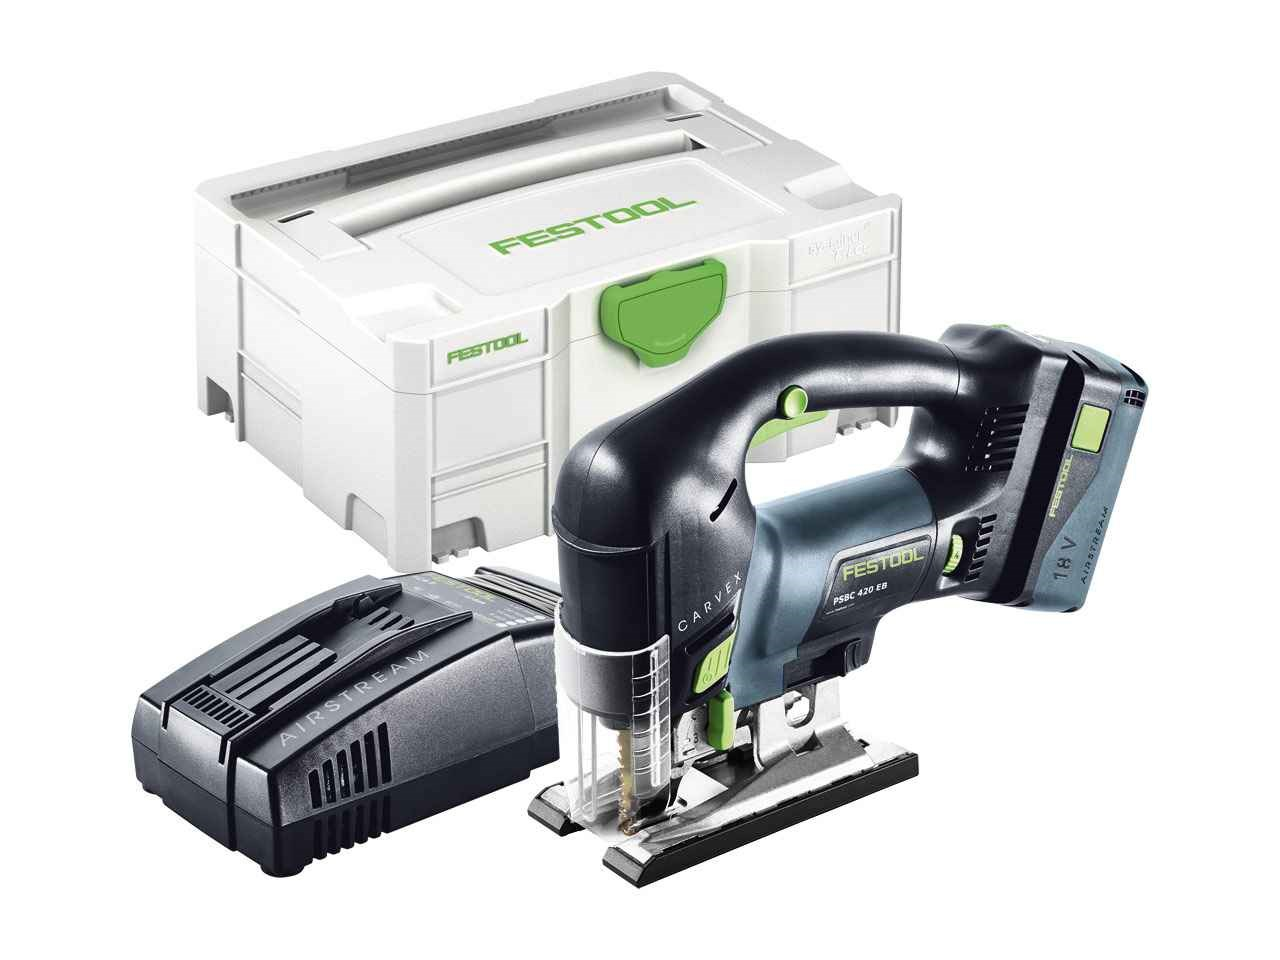 festool psbc 420 li 5 2 eb set 18v li ion pendulum jigsaw accs systainer. Black Bedroom Furniture Sets. Home Design Ideas